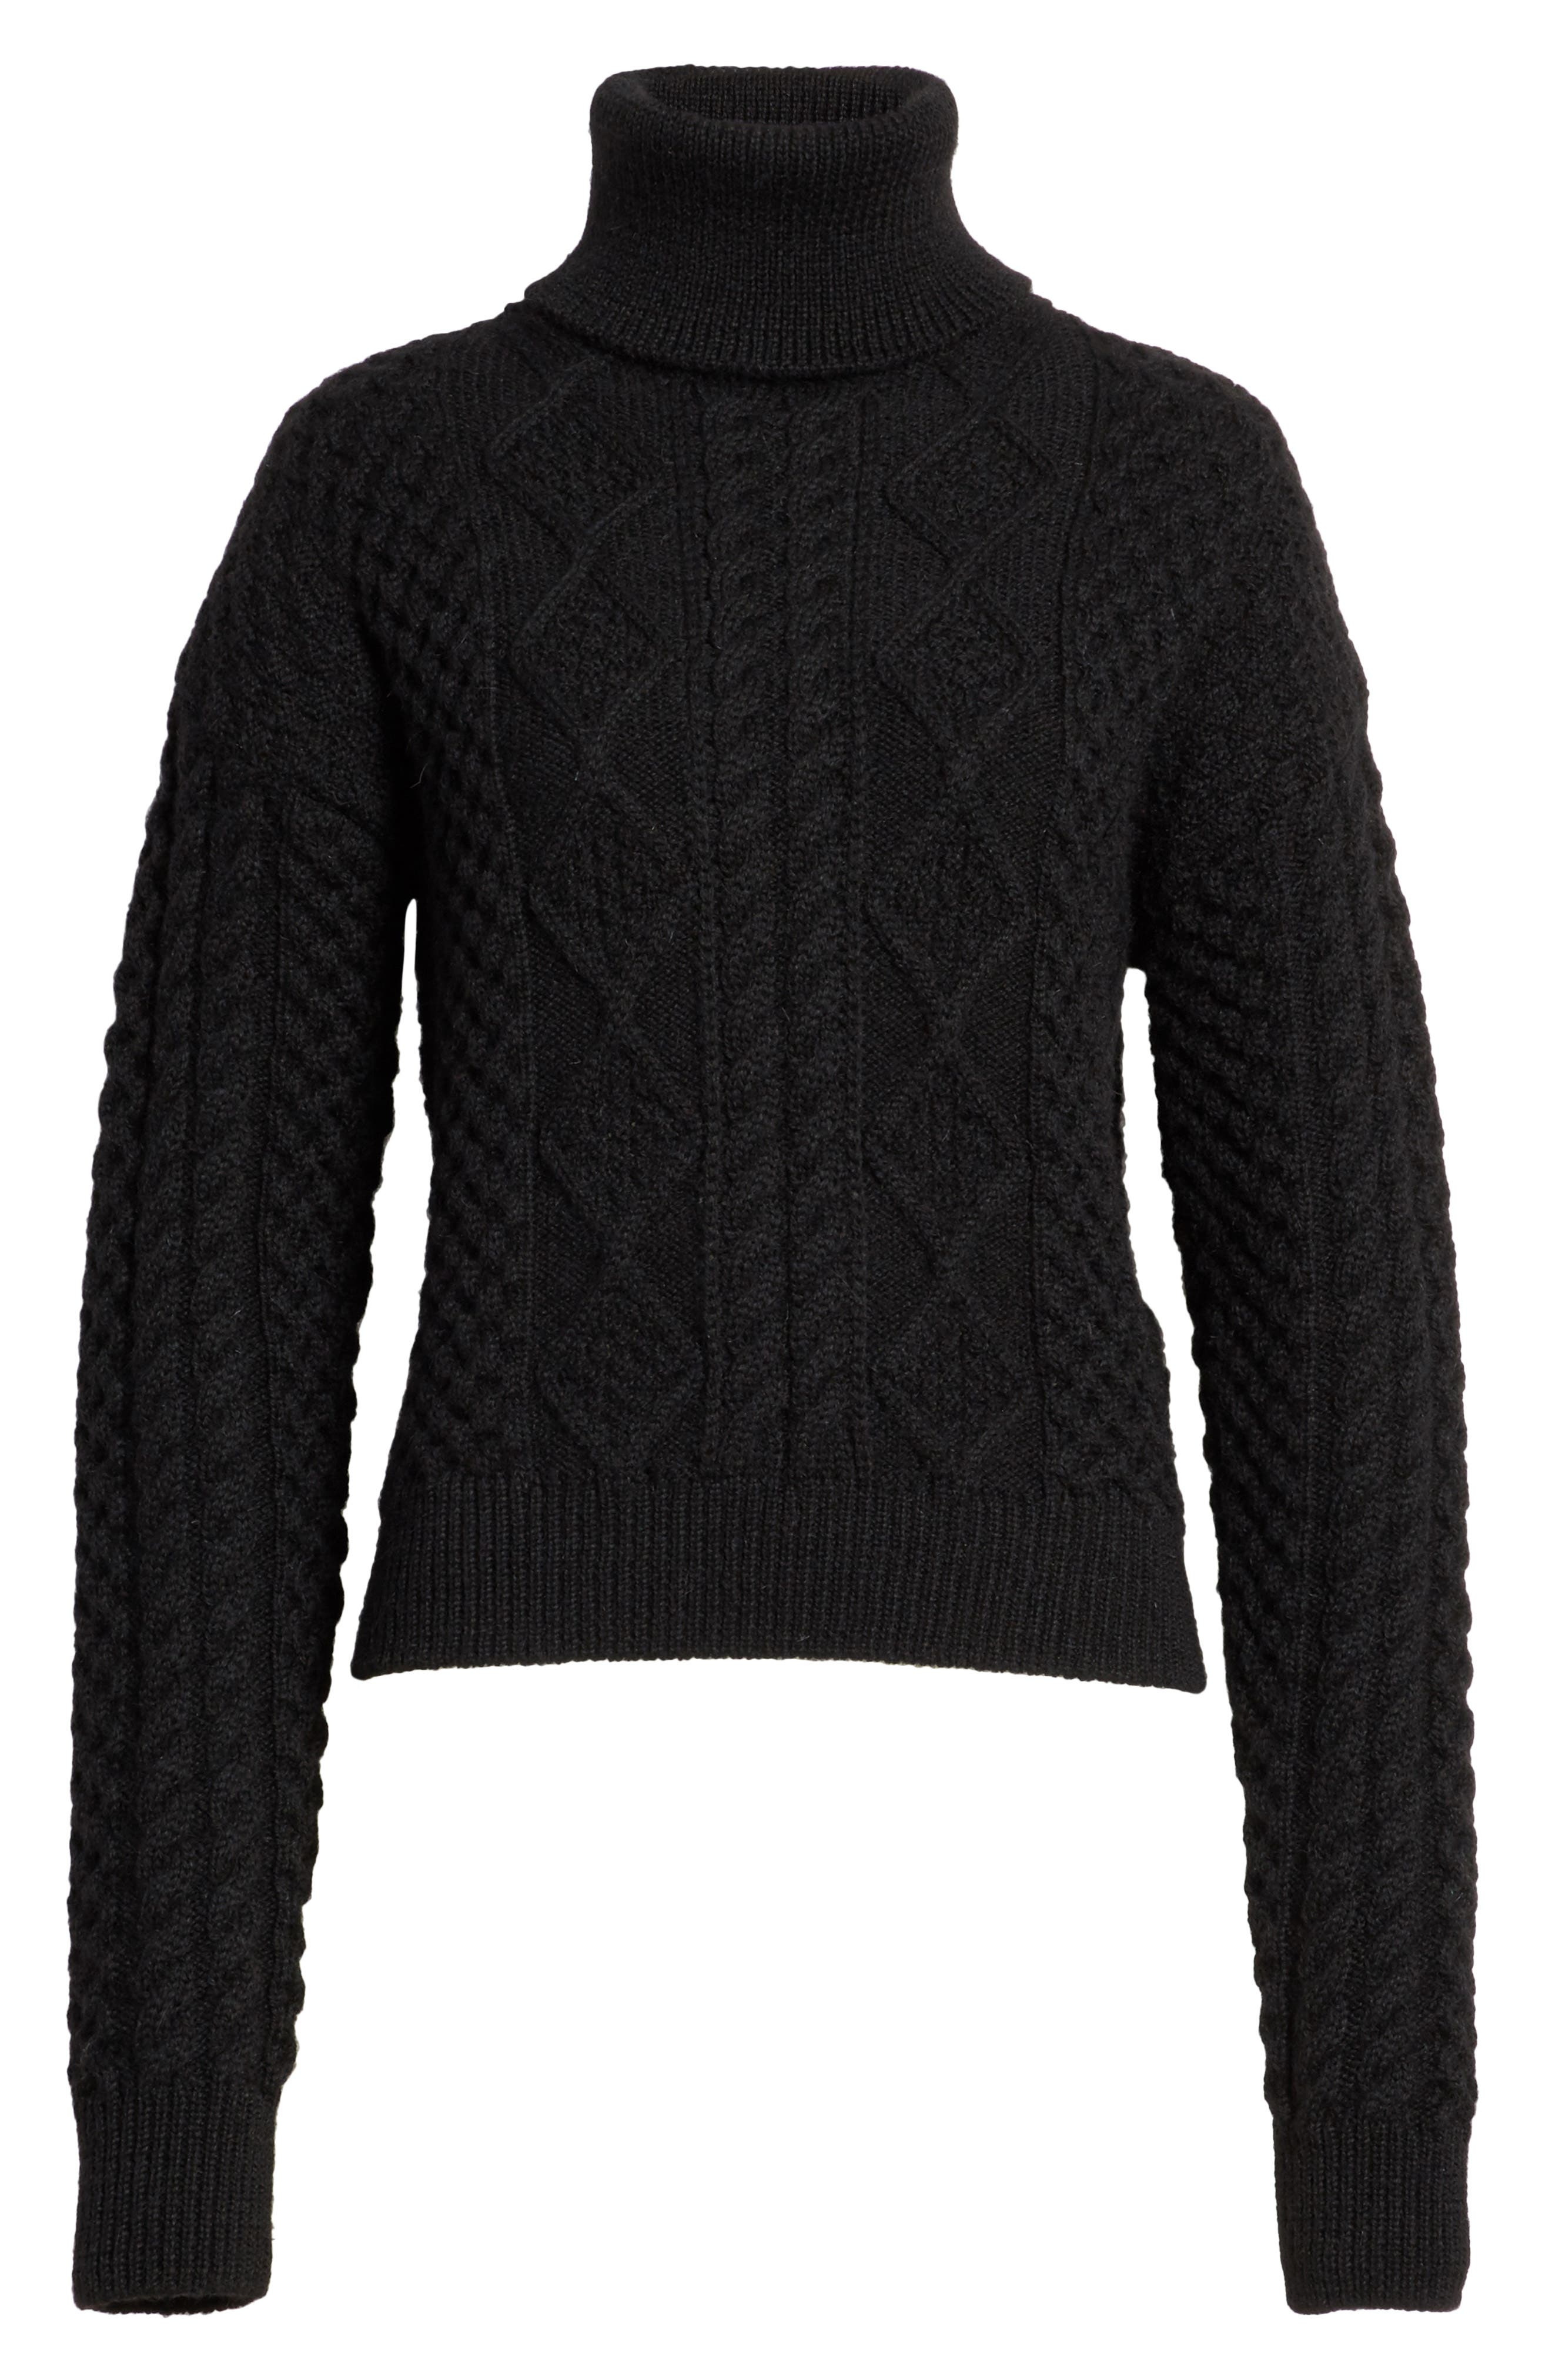 Cable Knit Wool Turtleneck Sweater,                             Alternate thumbnail 6, color,                             Black